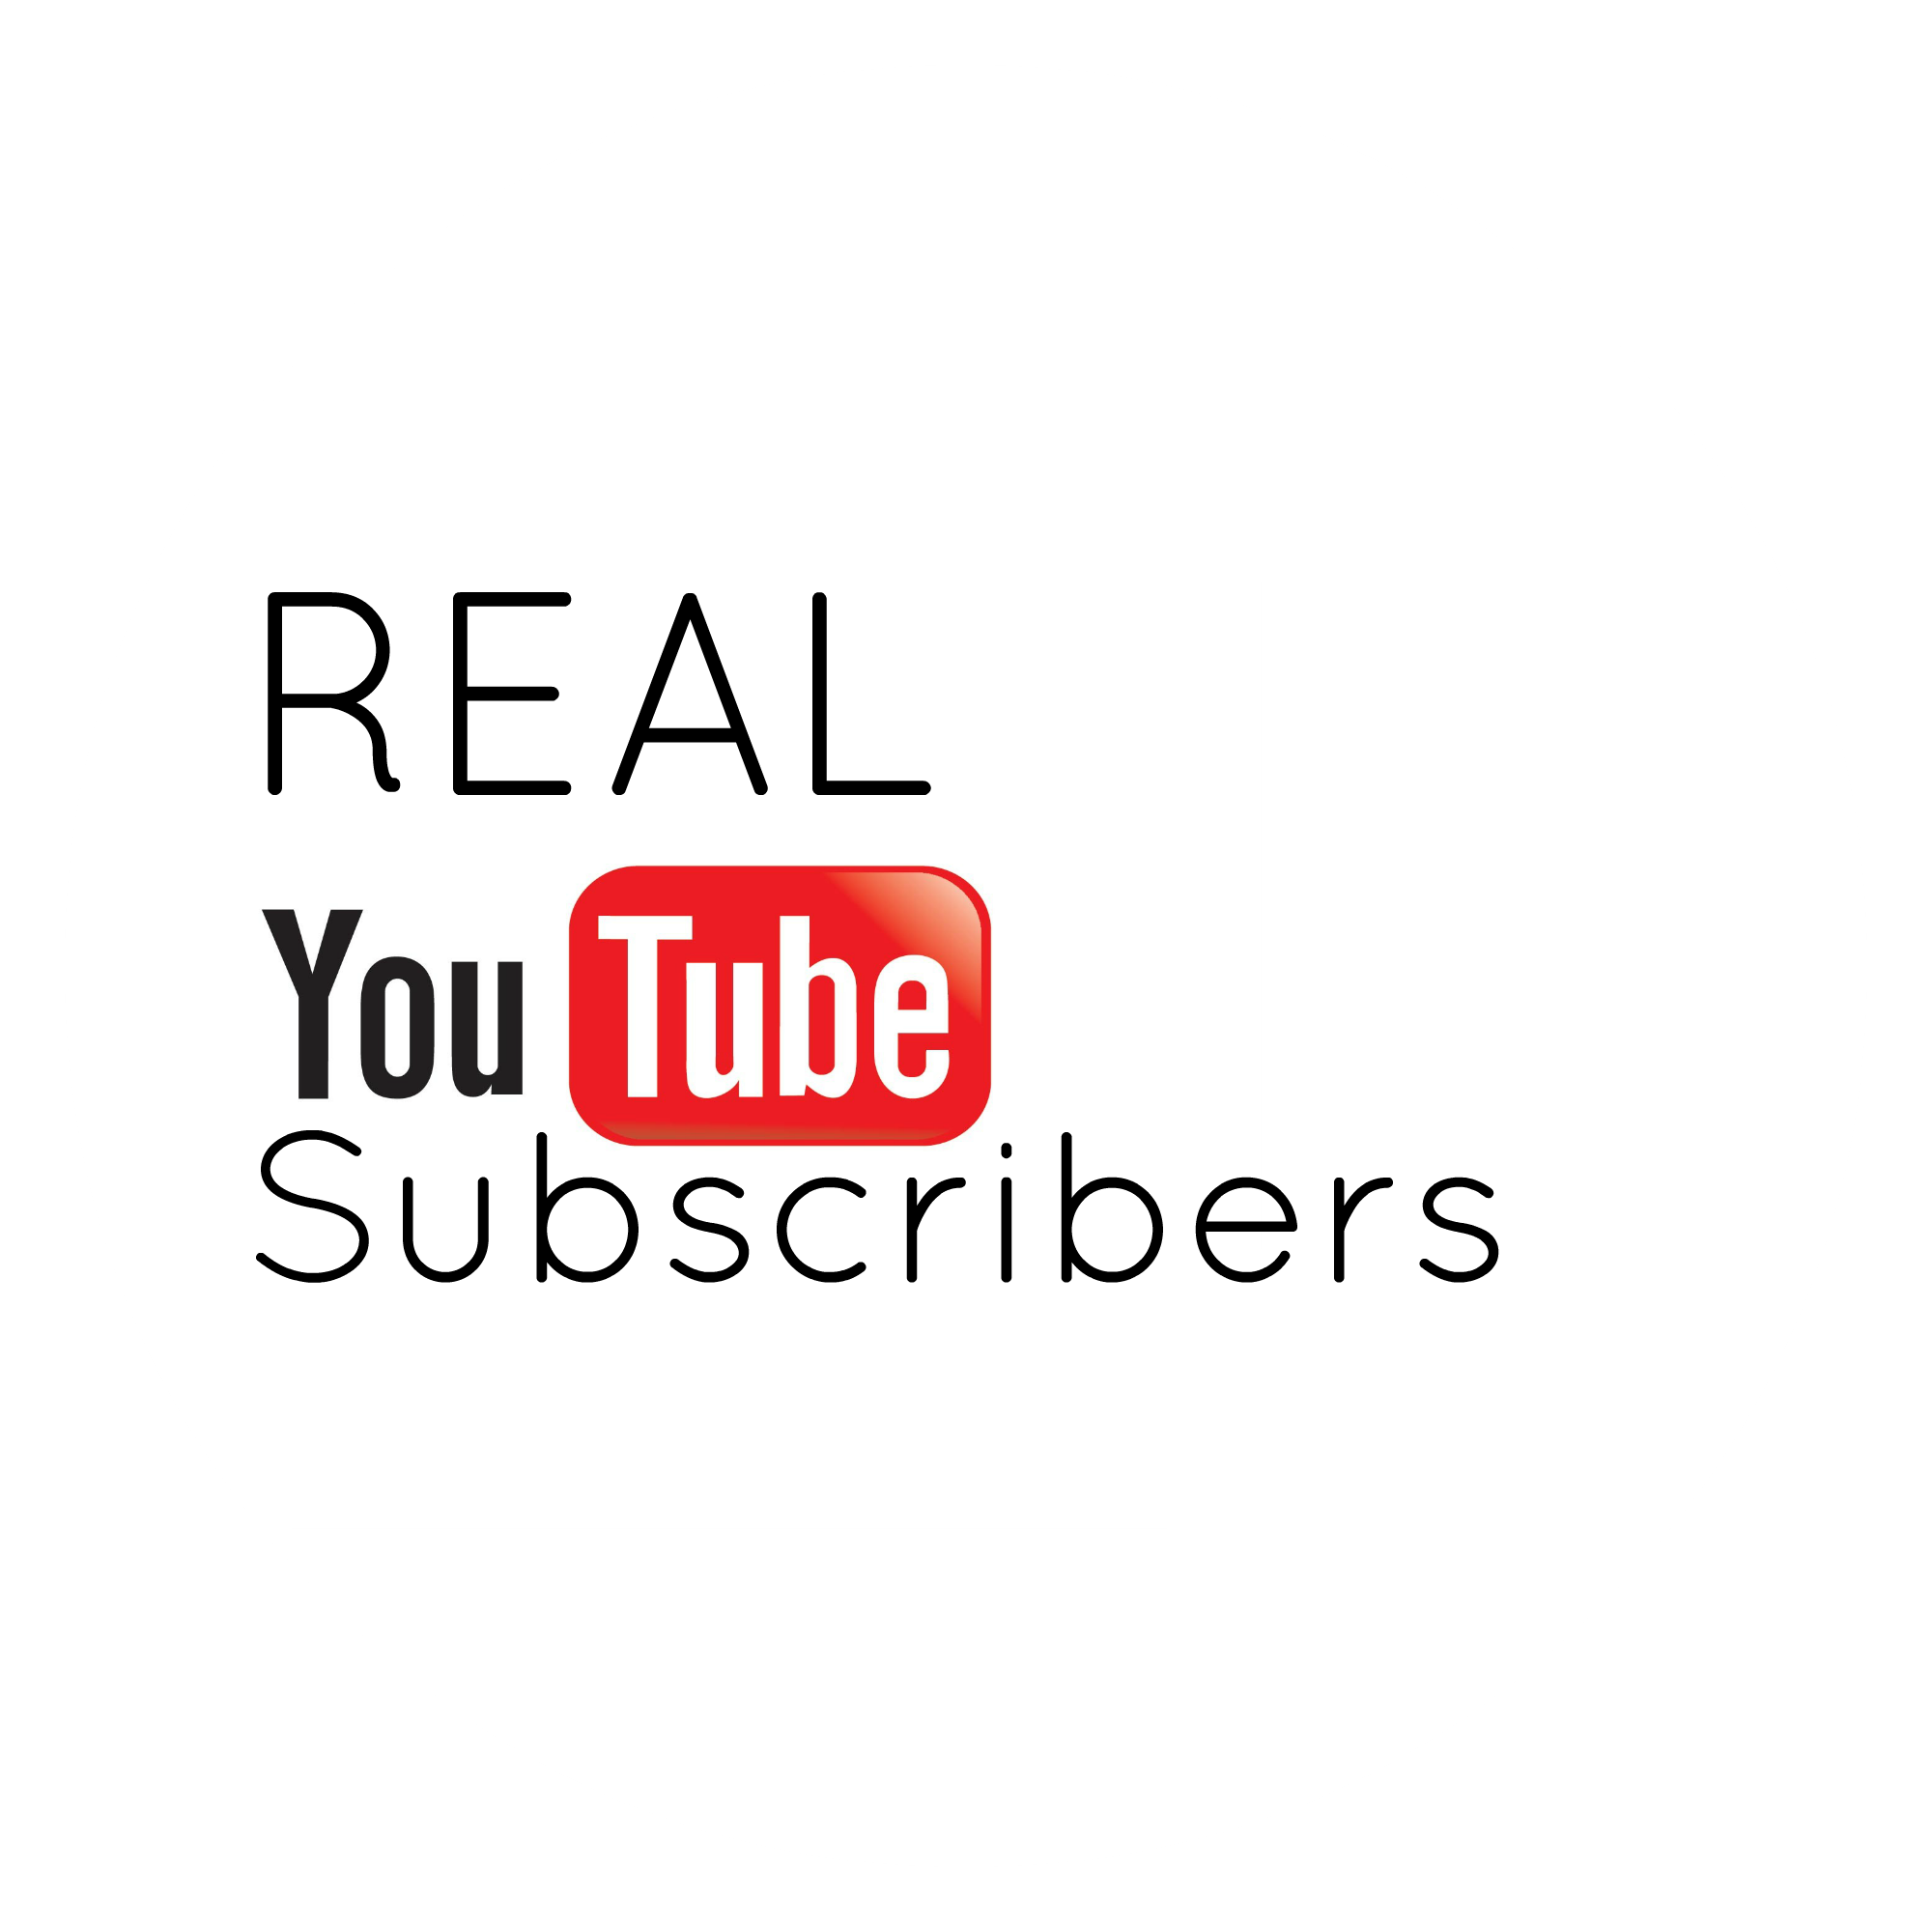 REAL 250+ Non Drop Youtube Subscribers For $3 - Pay After Delivery to the Channel. ORDER NOW !!!